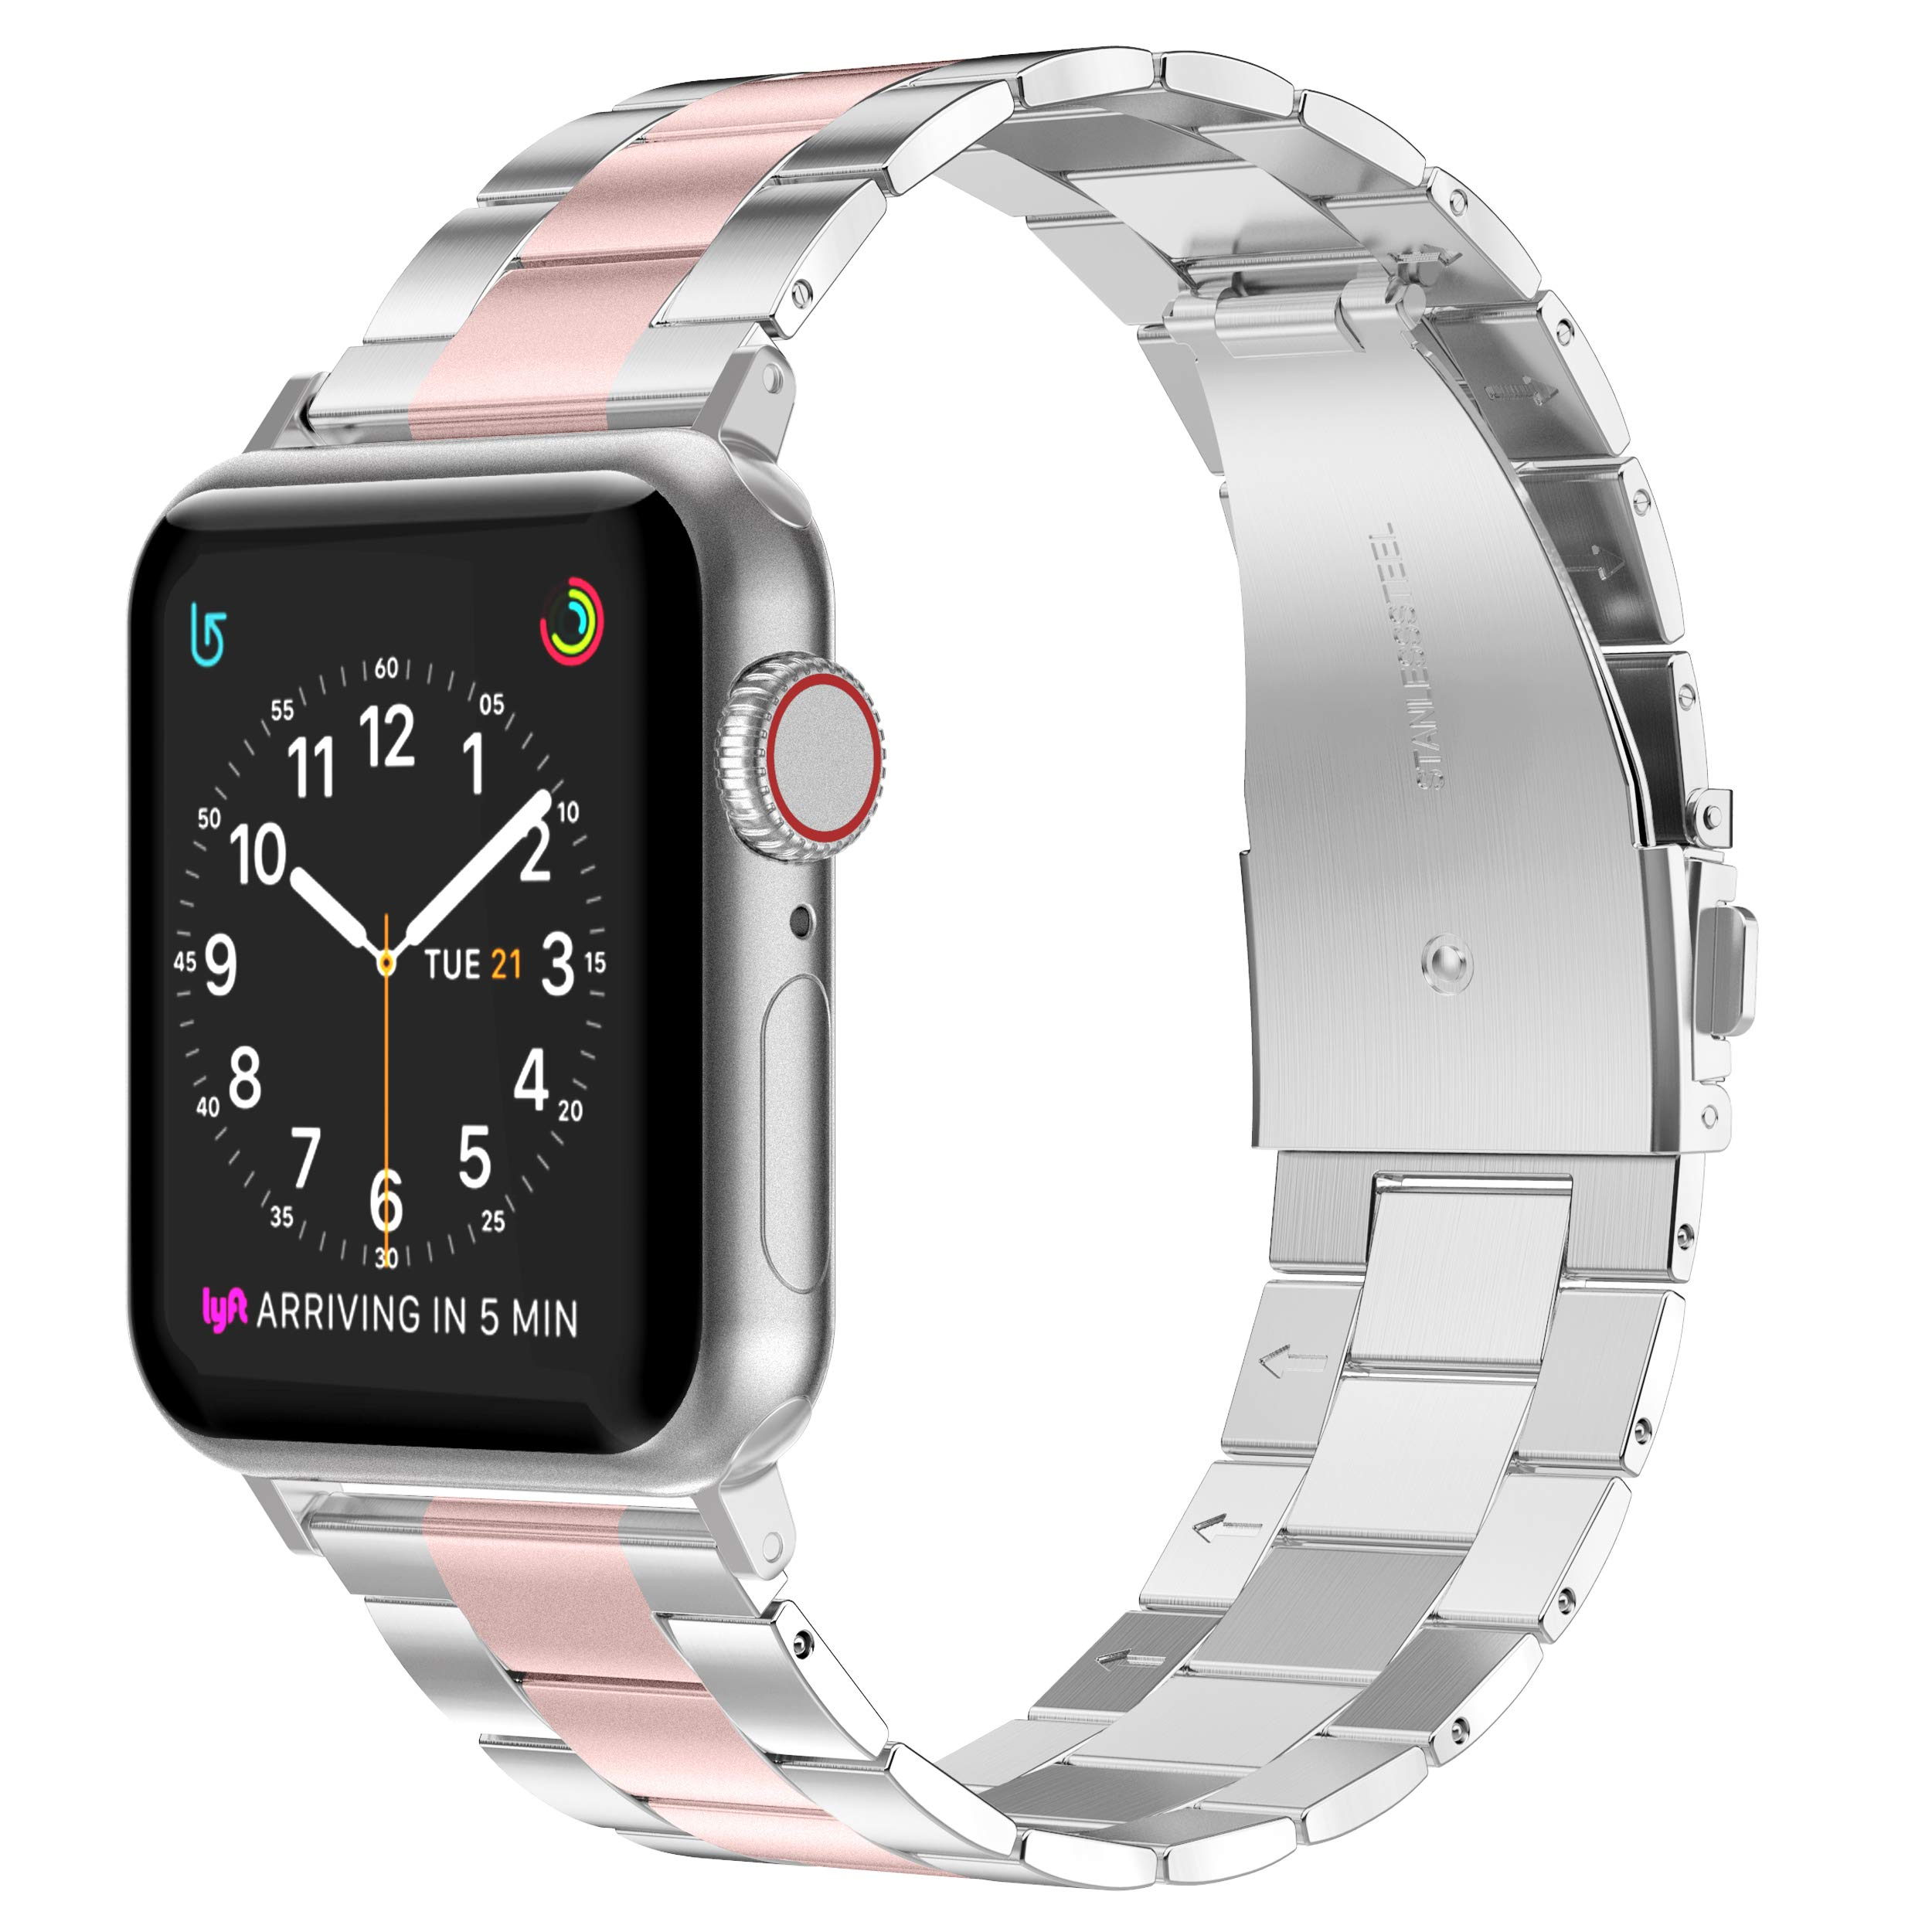 Wearlizer Stainless Steel Compatible with Apple Watch Band 38mm 40mm Women Men,Ultra-Thin Lightweight Color Matching Replacement Band Strap Compatible for iWatch Bands Series4321 Rose Gold+Silver